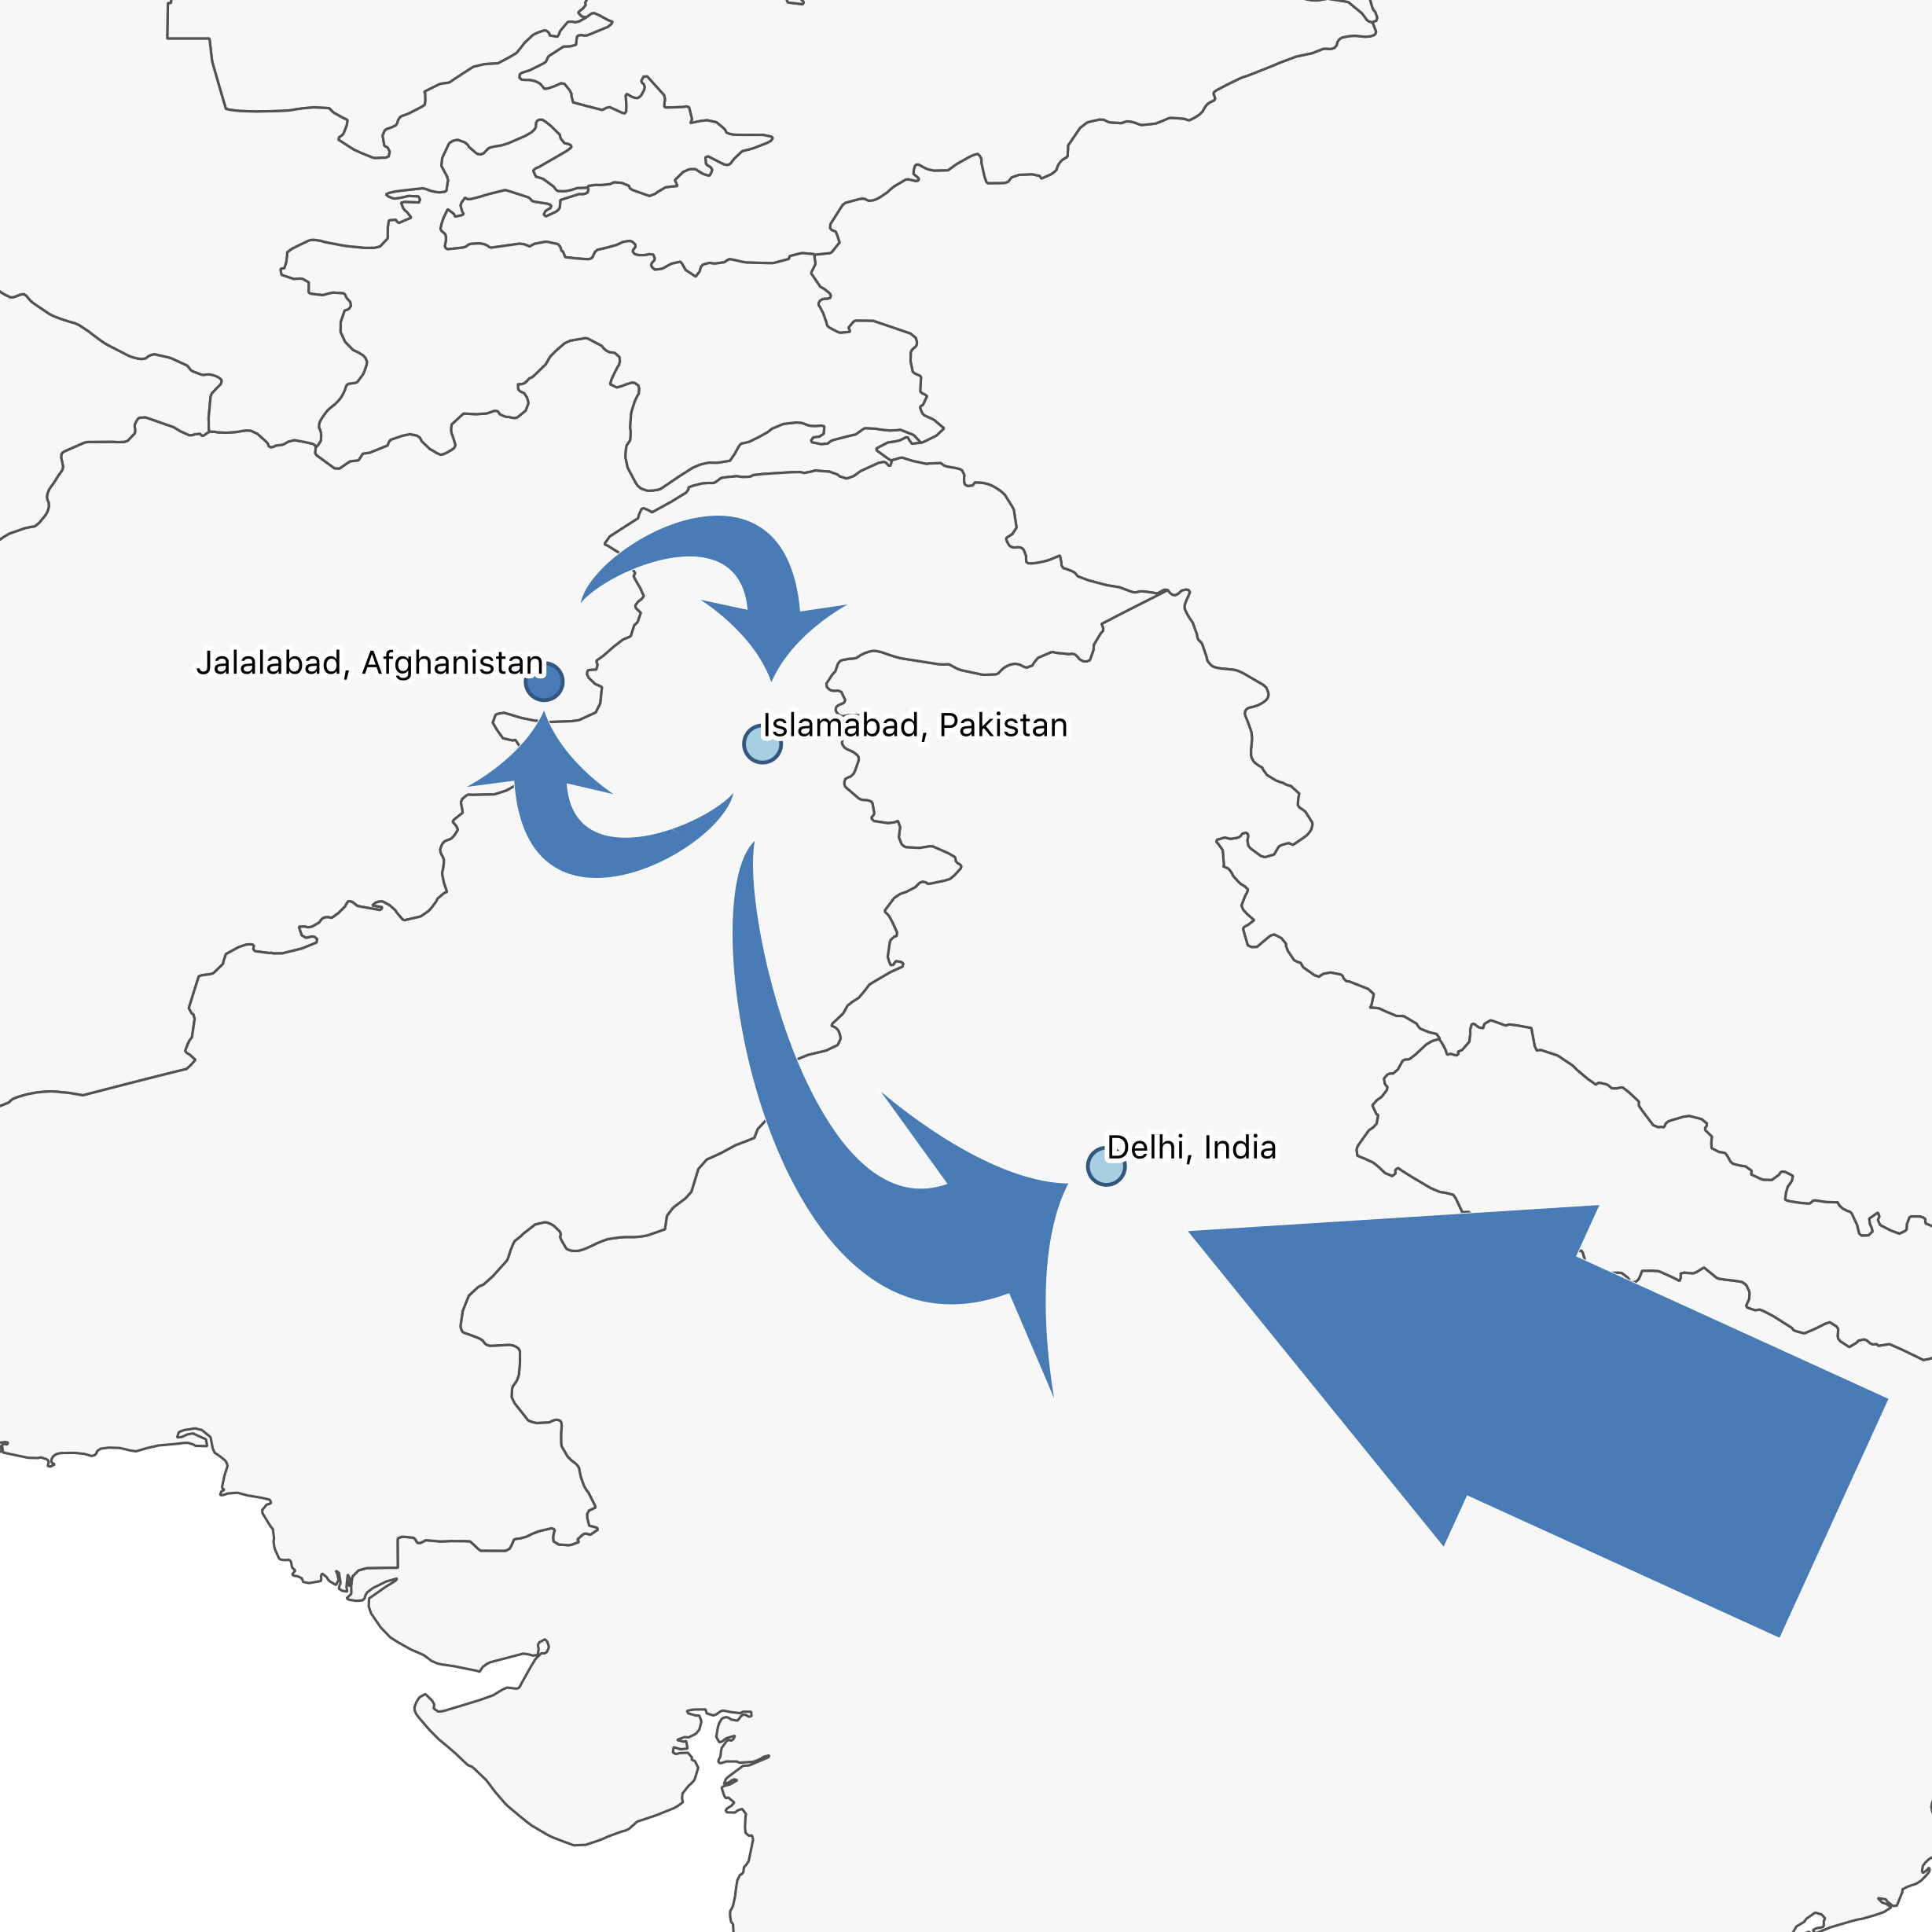 Delhi is a destination city in the South Asia region. Click the map to learn more about the region, and to read other RIT cases from cities linked together by these movements of people.